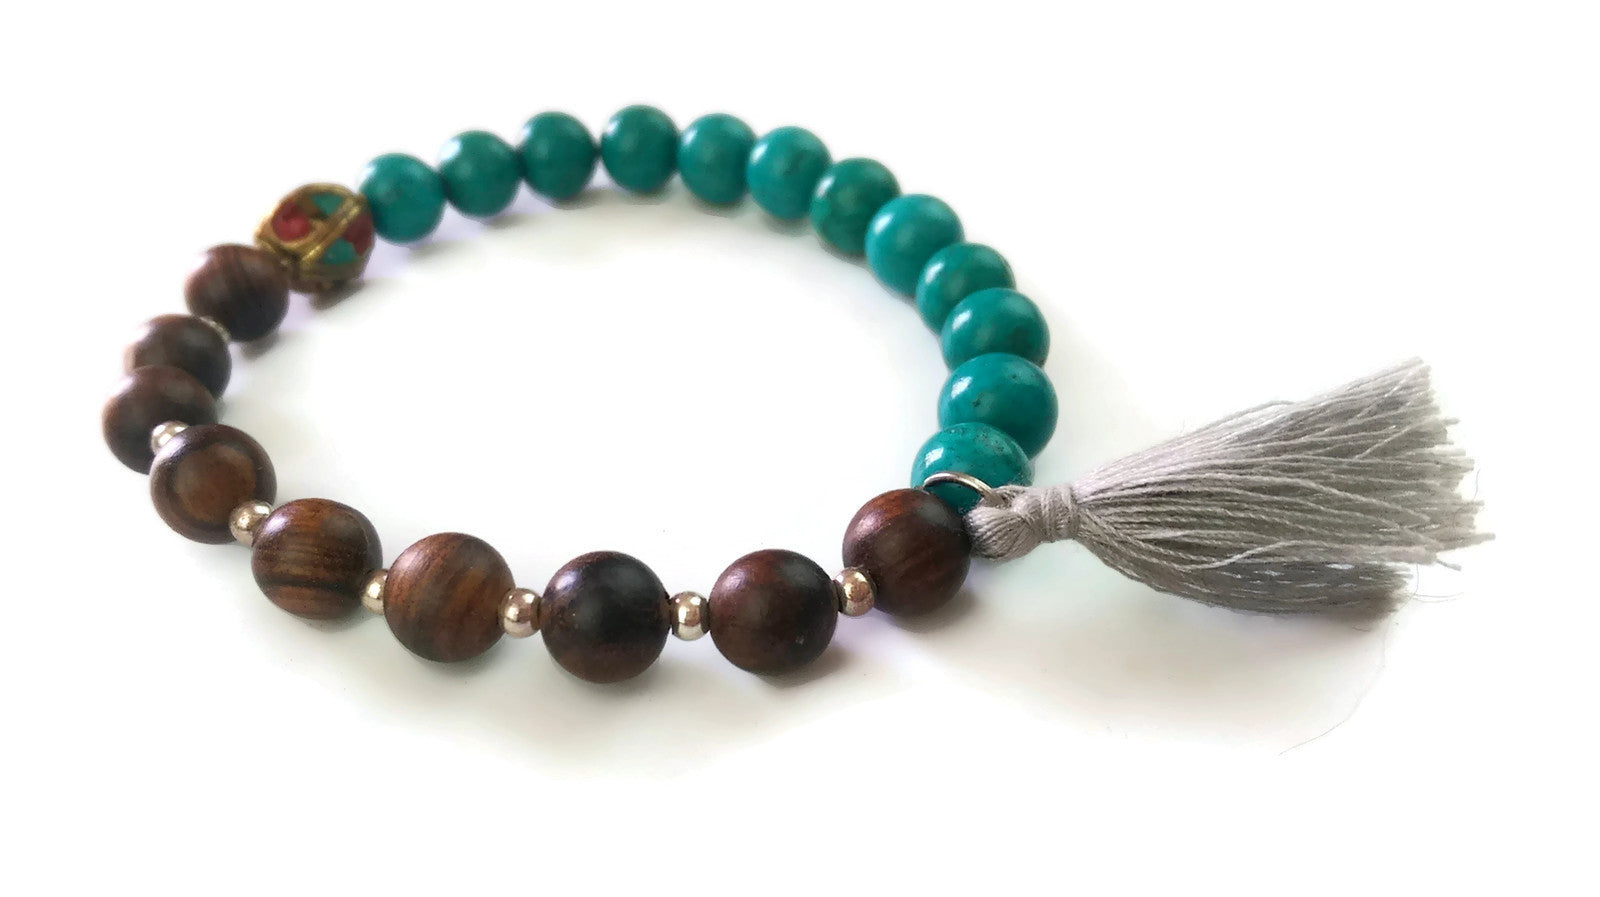 Nepal Chakra Collection 8mm Rose Wood Turquoise Nepal Bead Wrist Mala Stretch Bracelet Throat Chakra